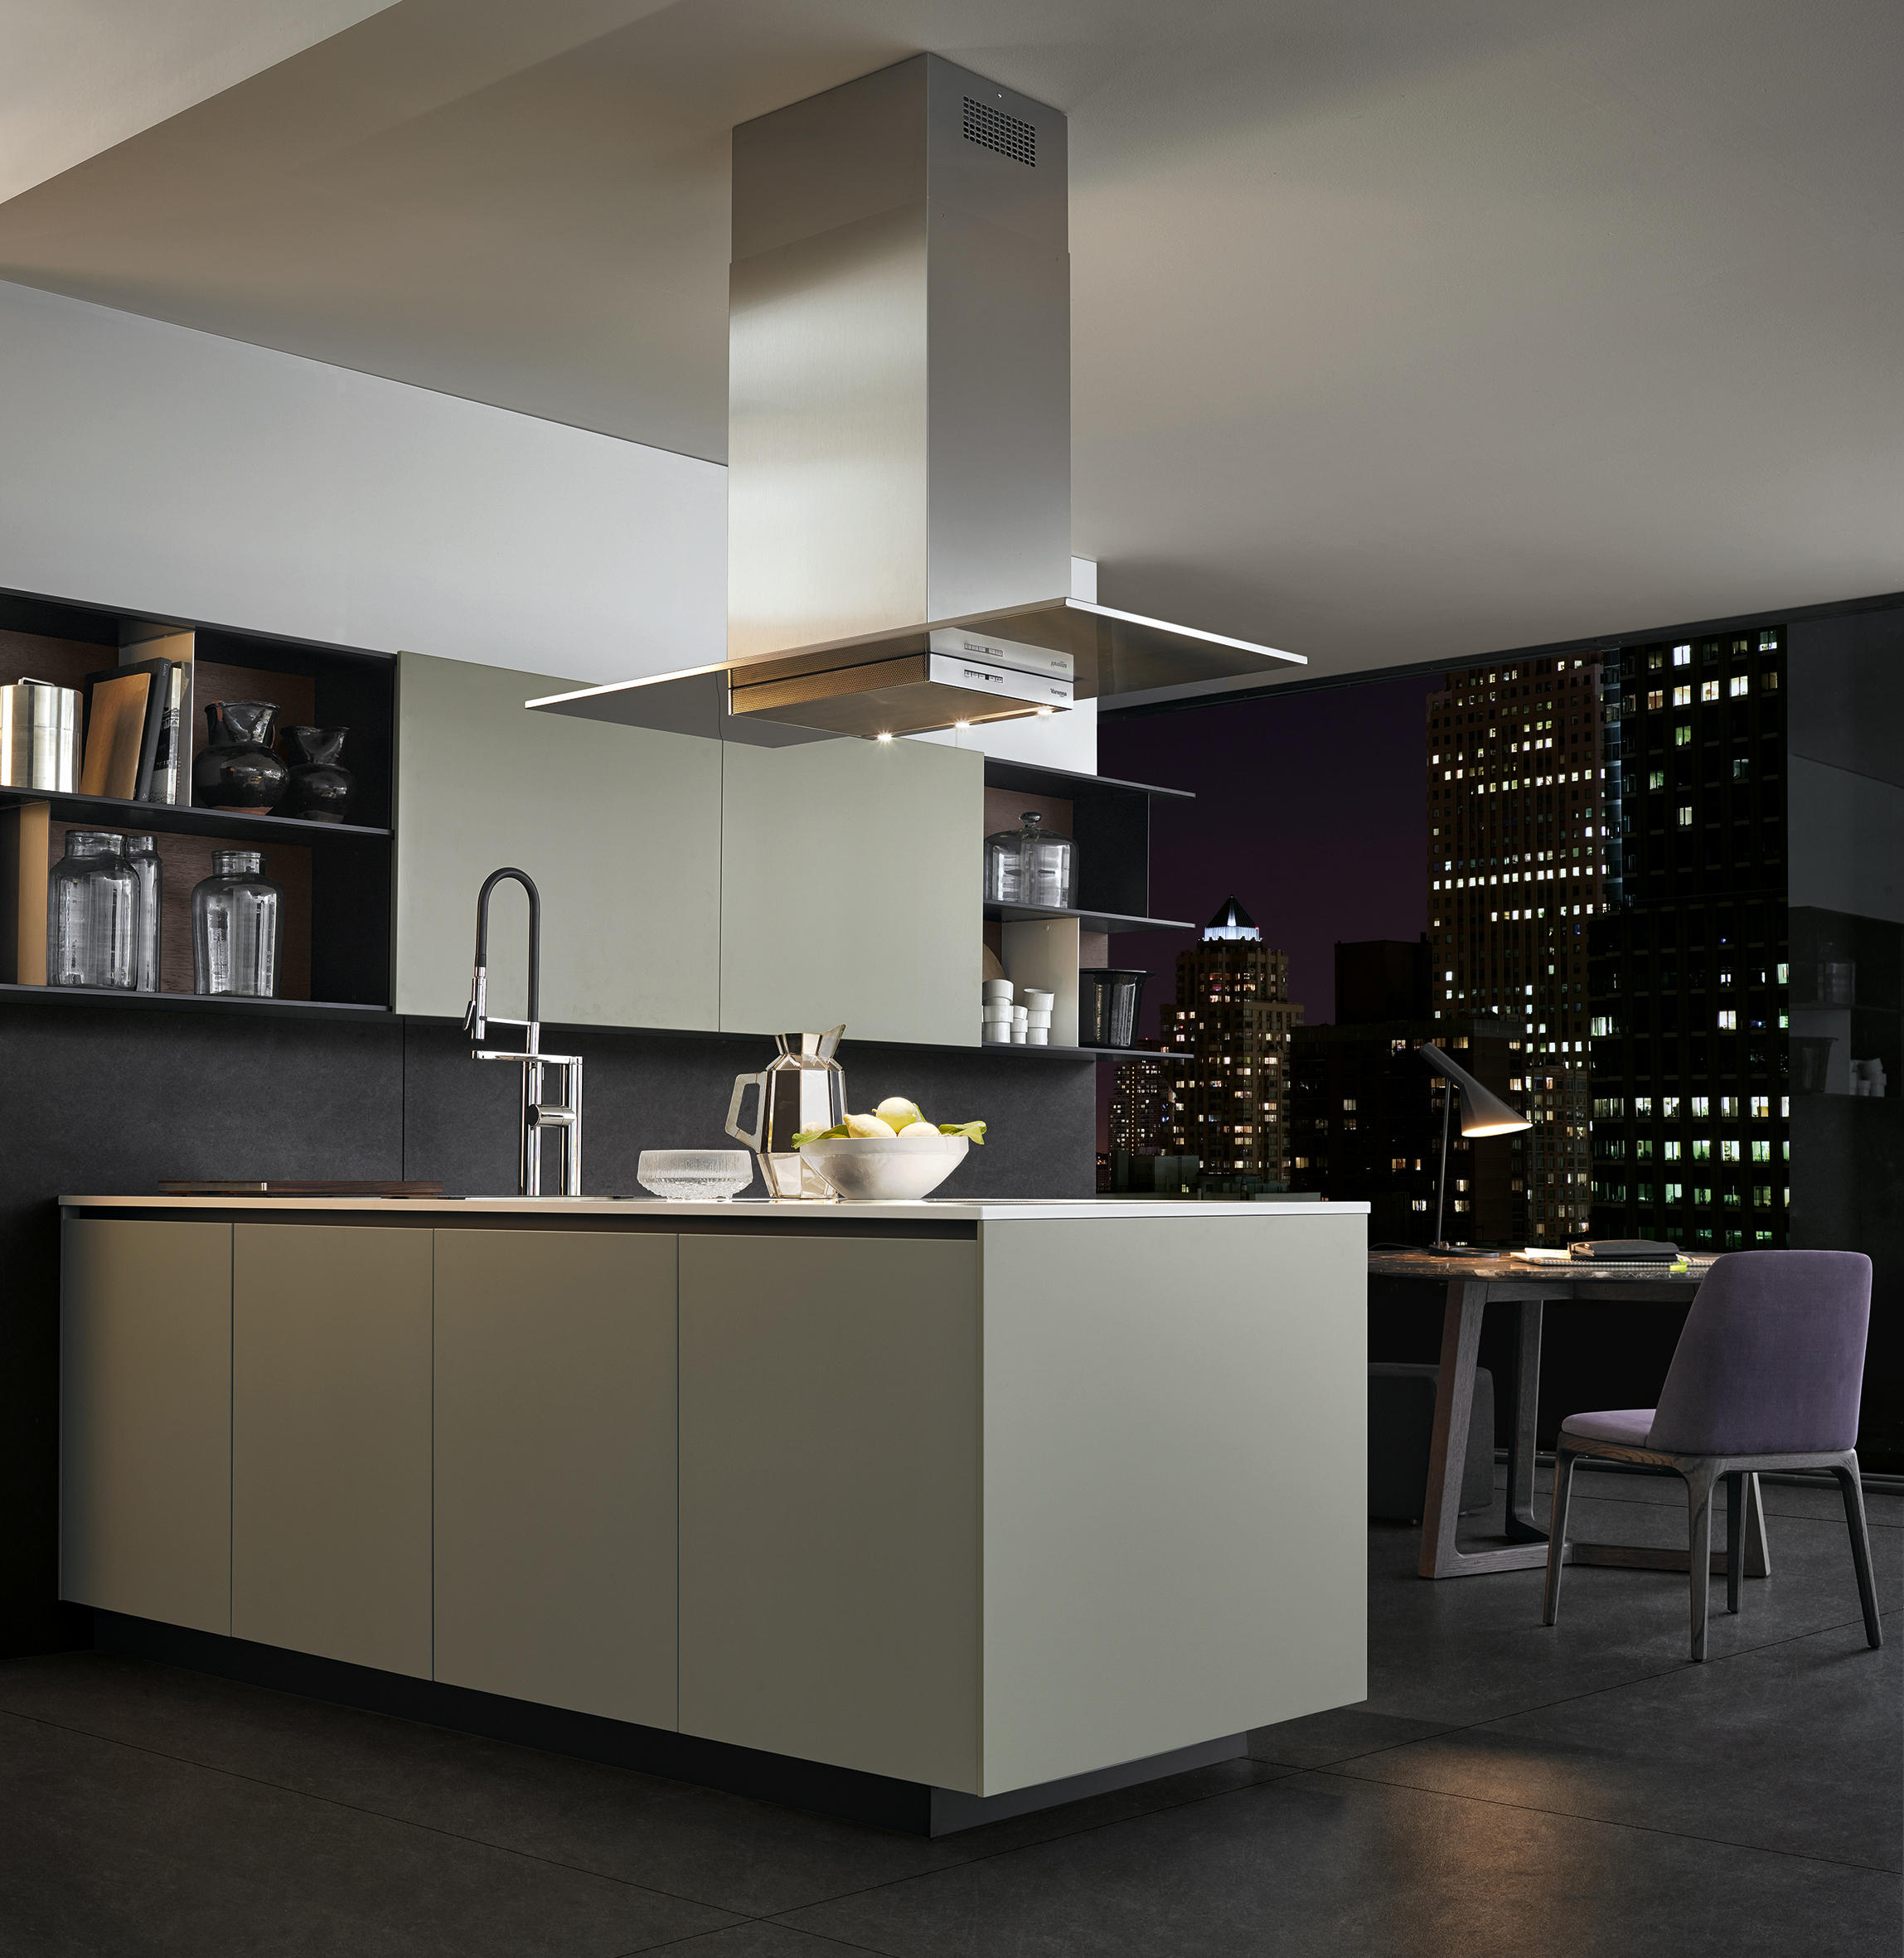 ALEA  Fitted kitchens from Varenna Poliform  Architonic